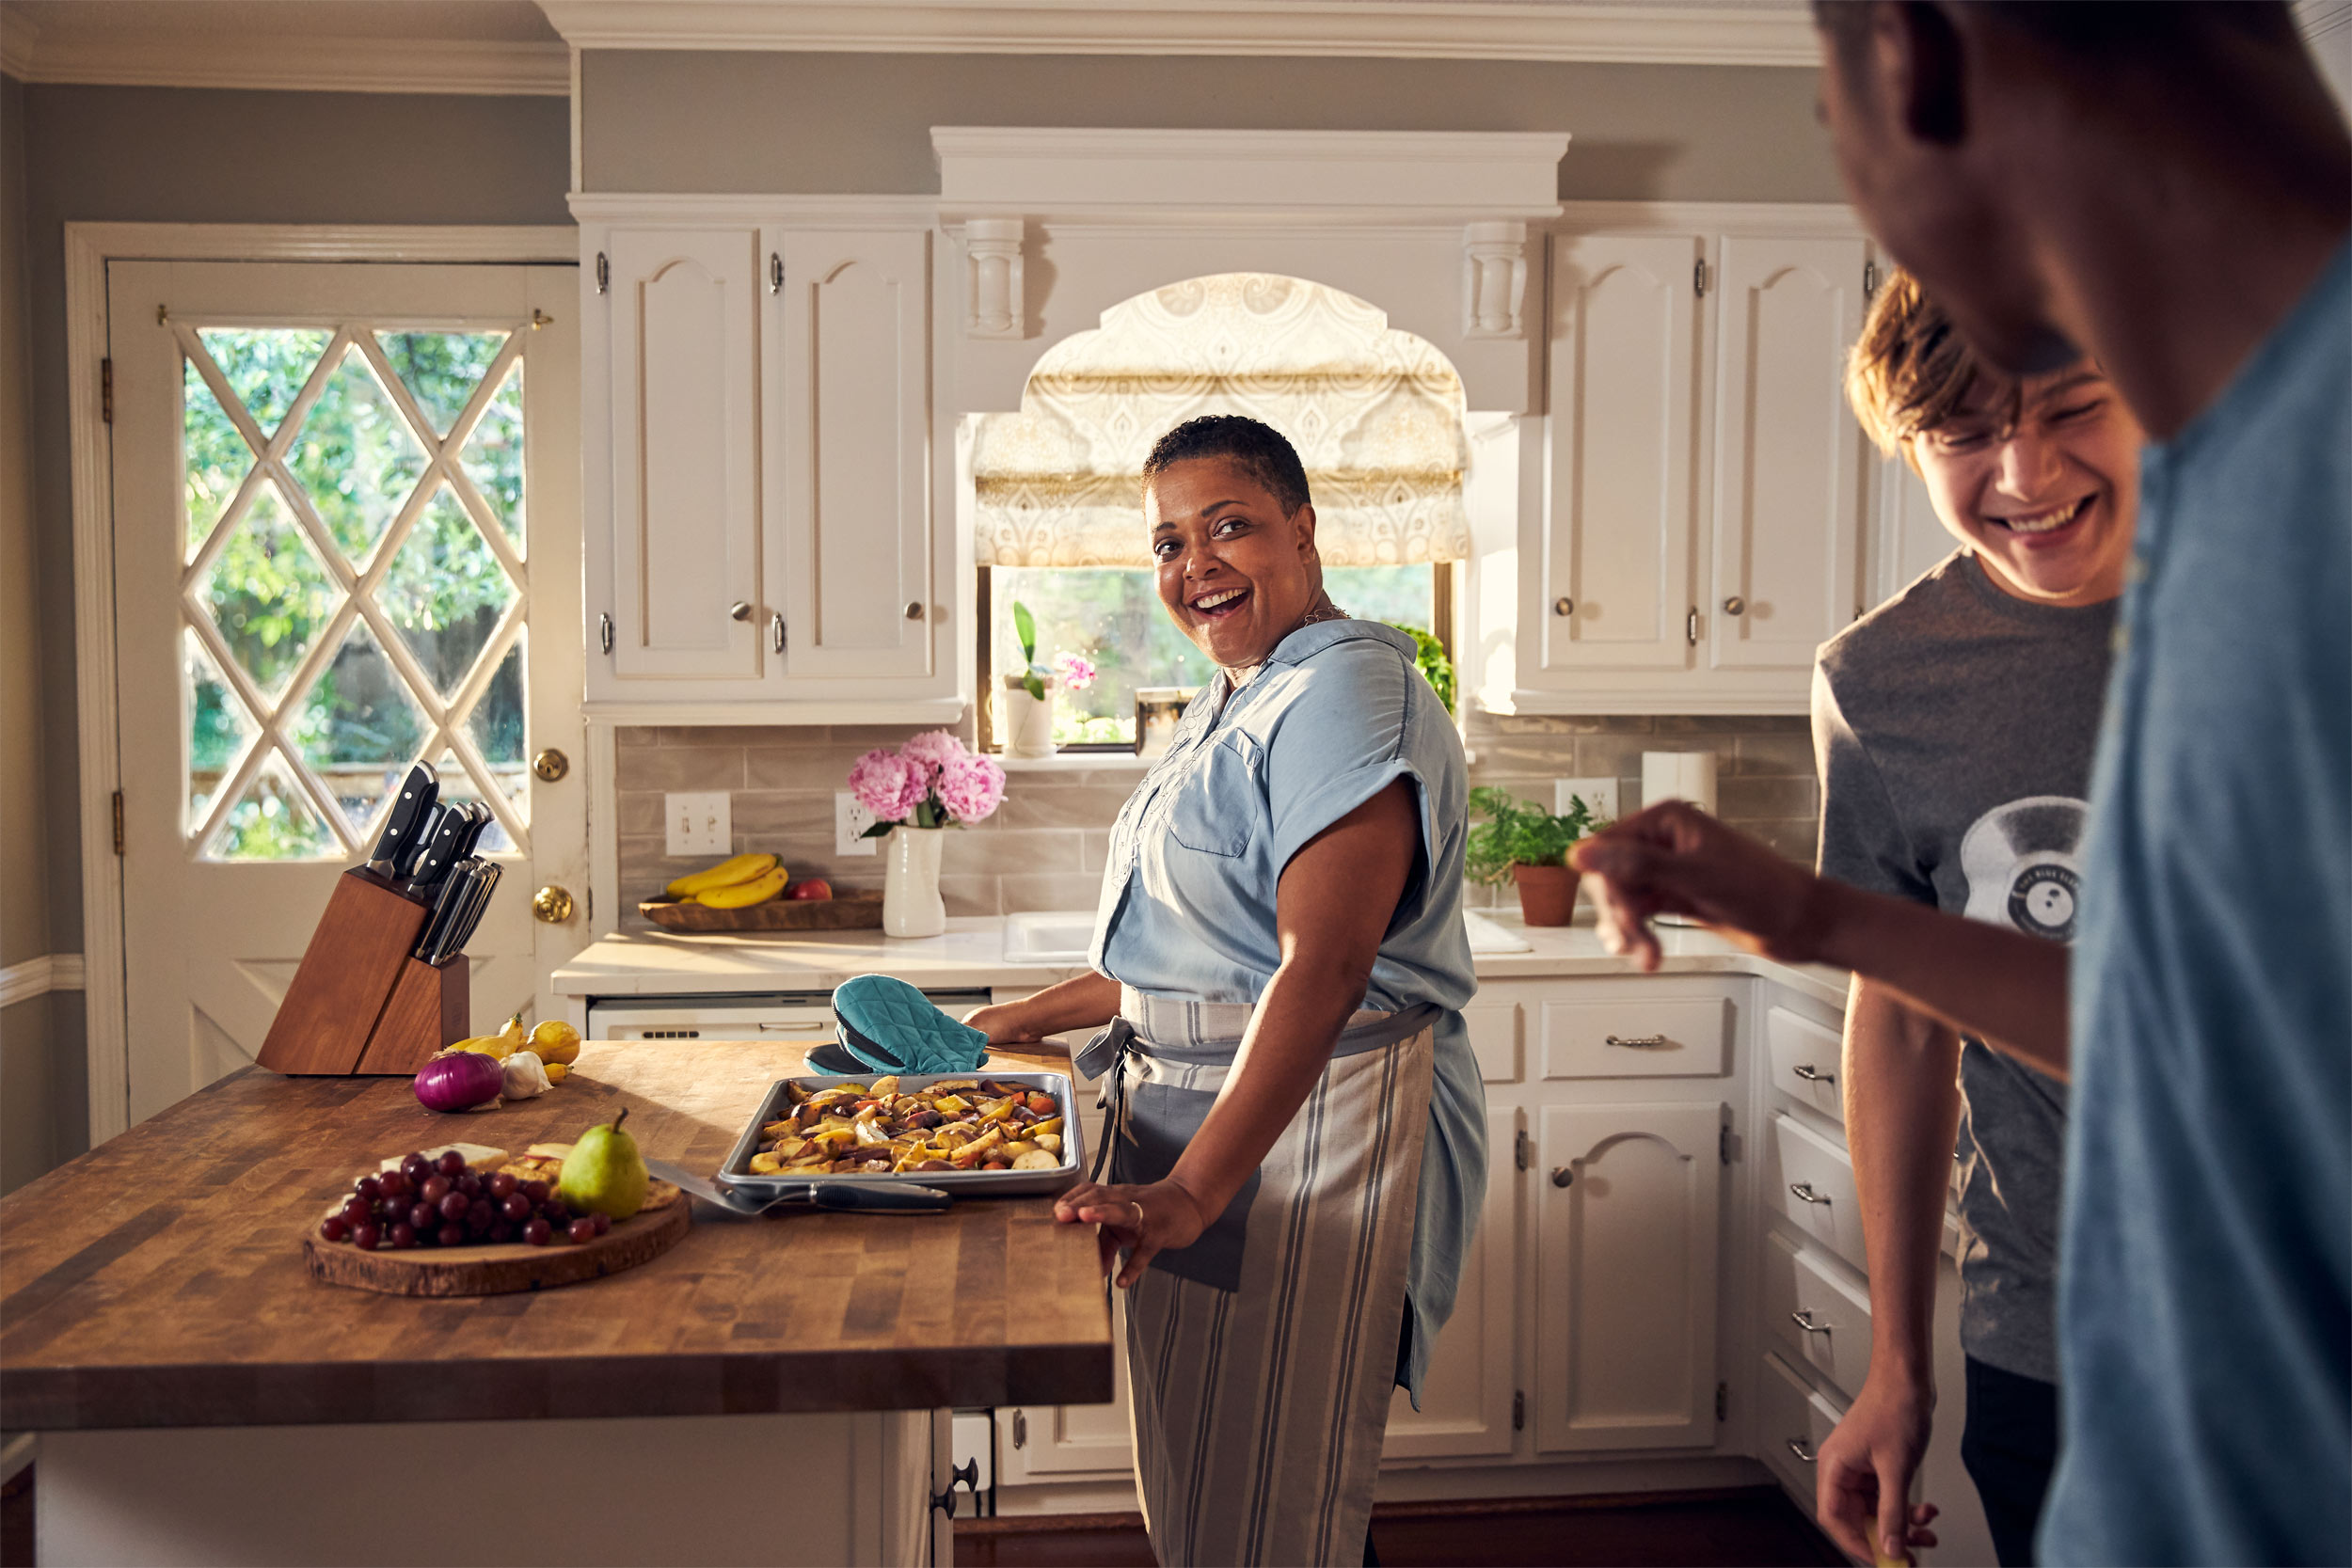 teens swiping food from kitchen with mom, washington dc commercial photography